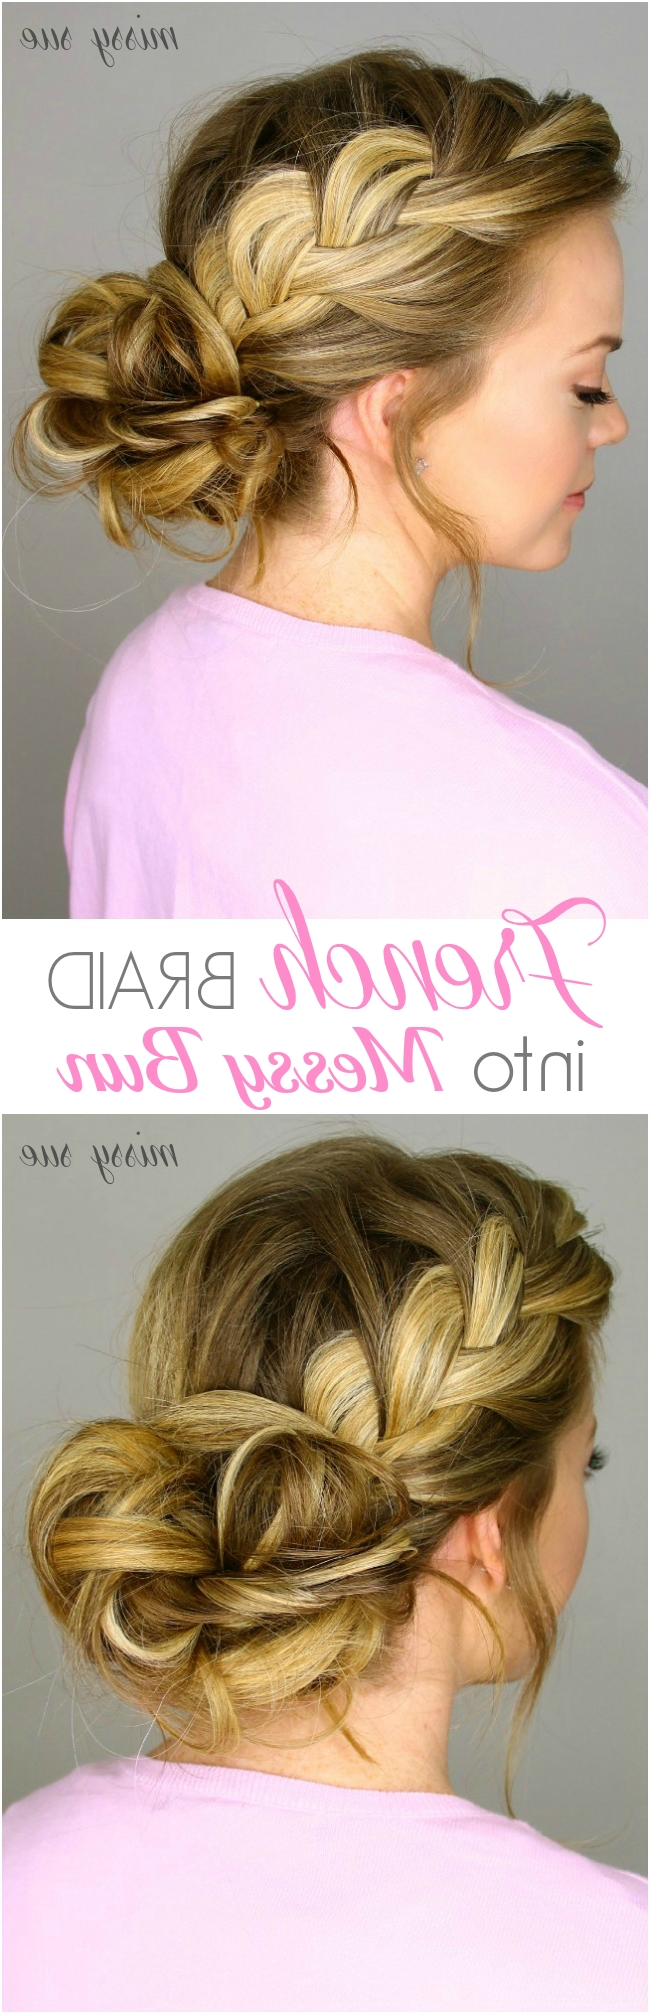 French Braid Into Messy Bun Intended For Latest Messy French Braid With Middle Part (View 5 of 15)